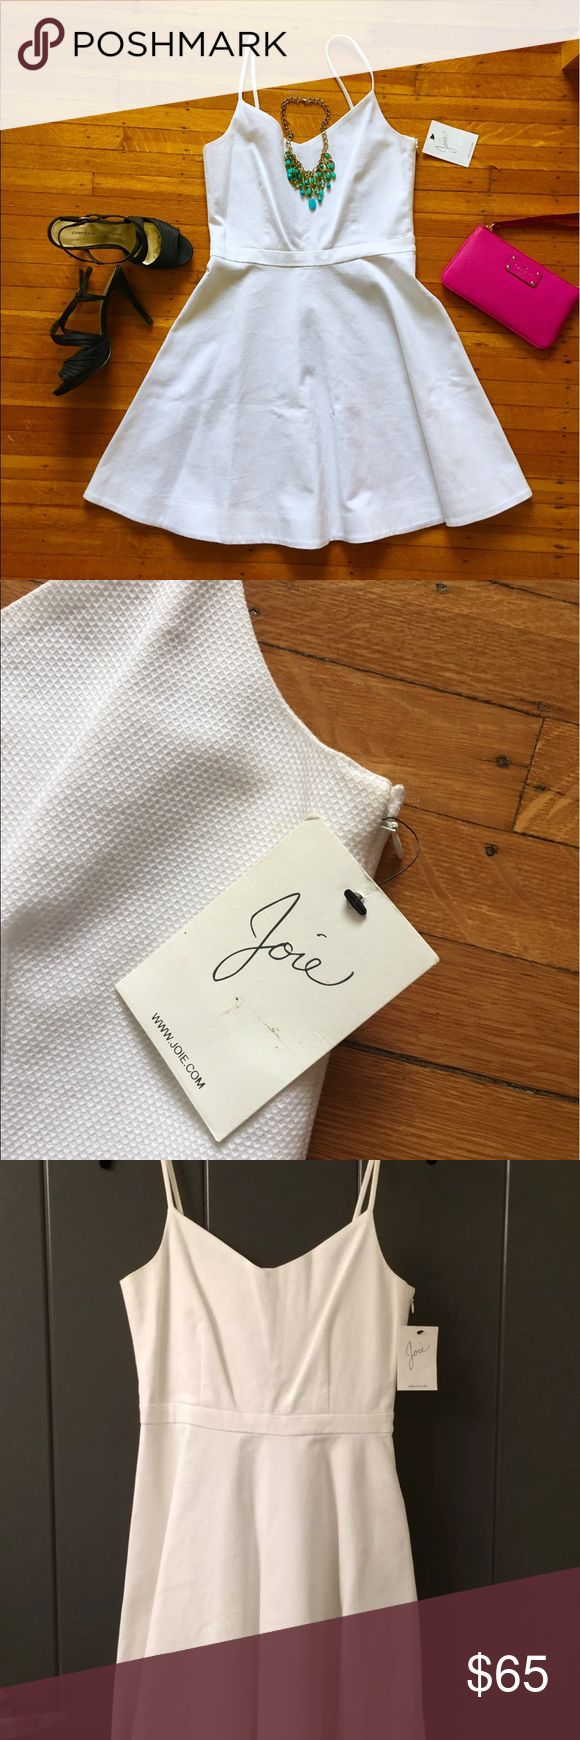 NWT WHite Joie Sundress Gorgeous white Joie dress. Perfect for the Derby, graduation, a wedding shower or rehearsal! Flattering flare fit. Measurements in photos. Joie Dresses